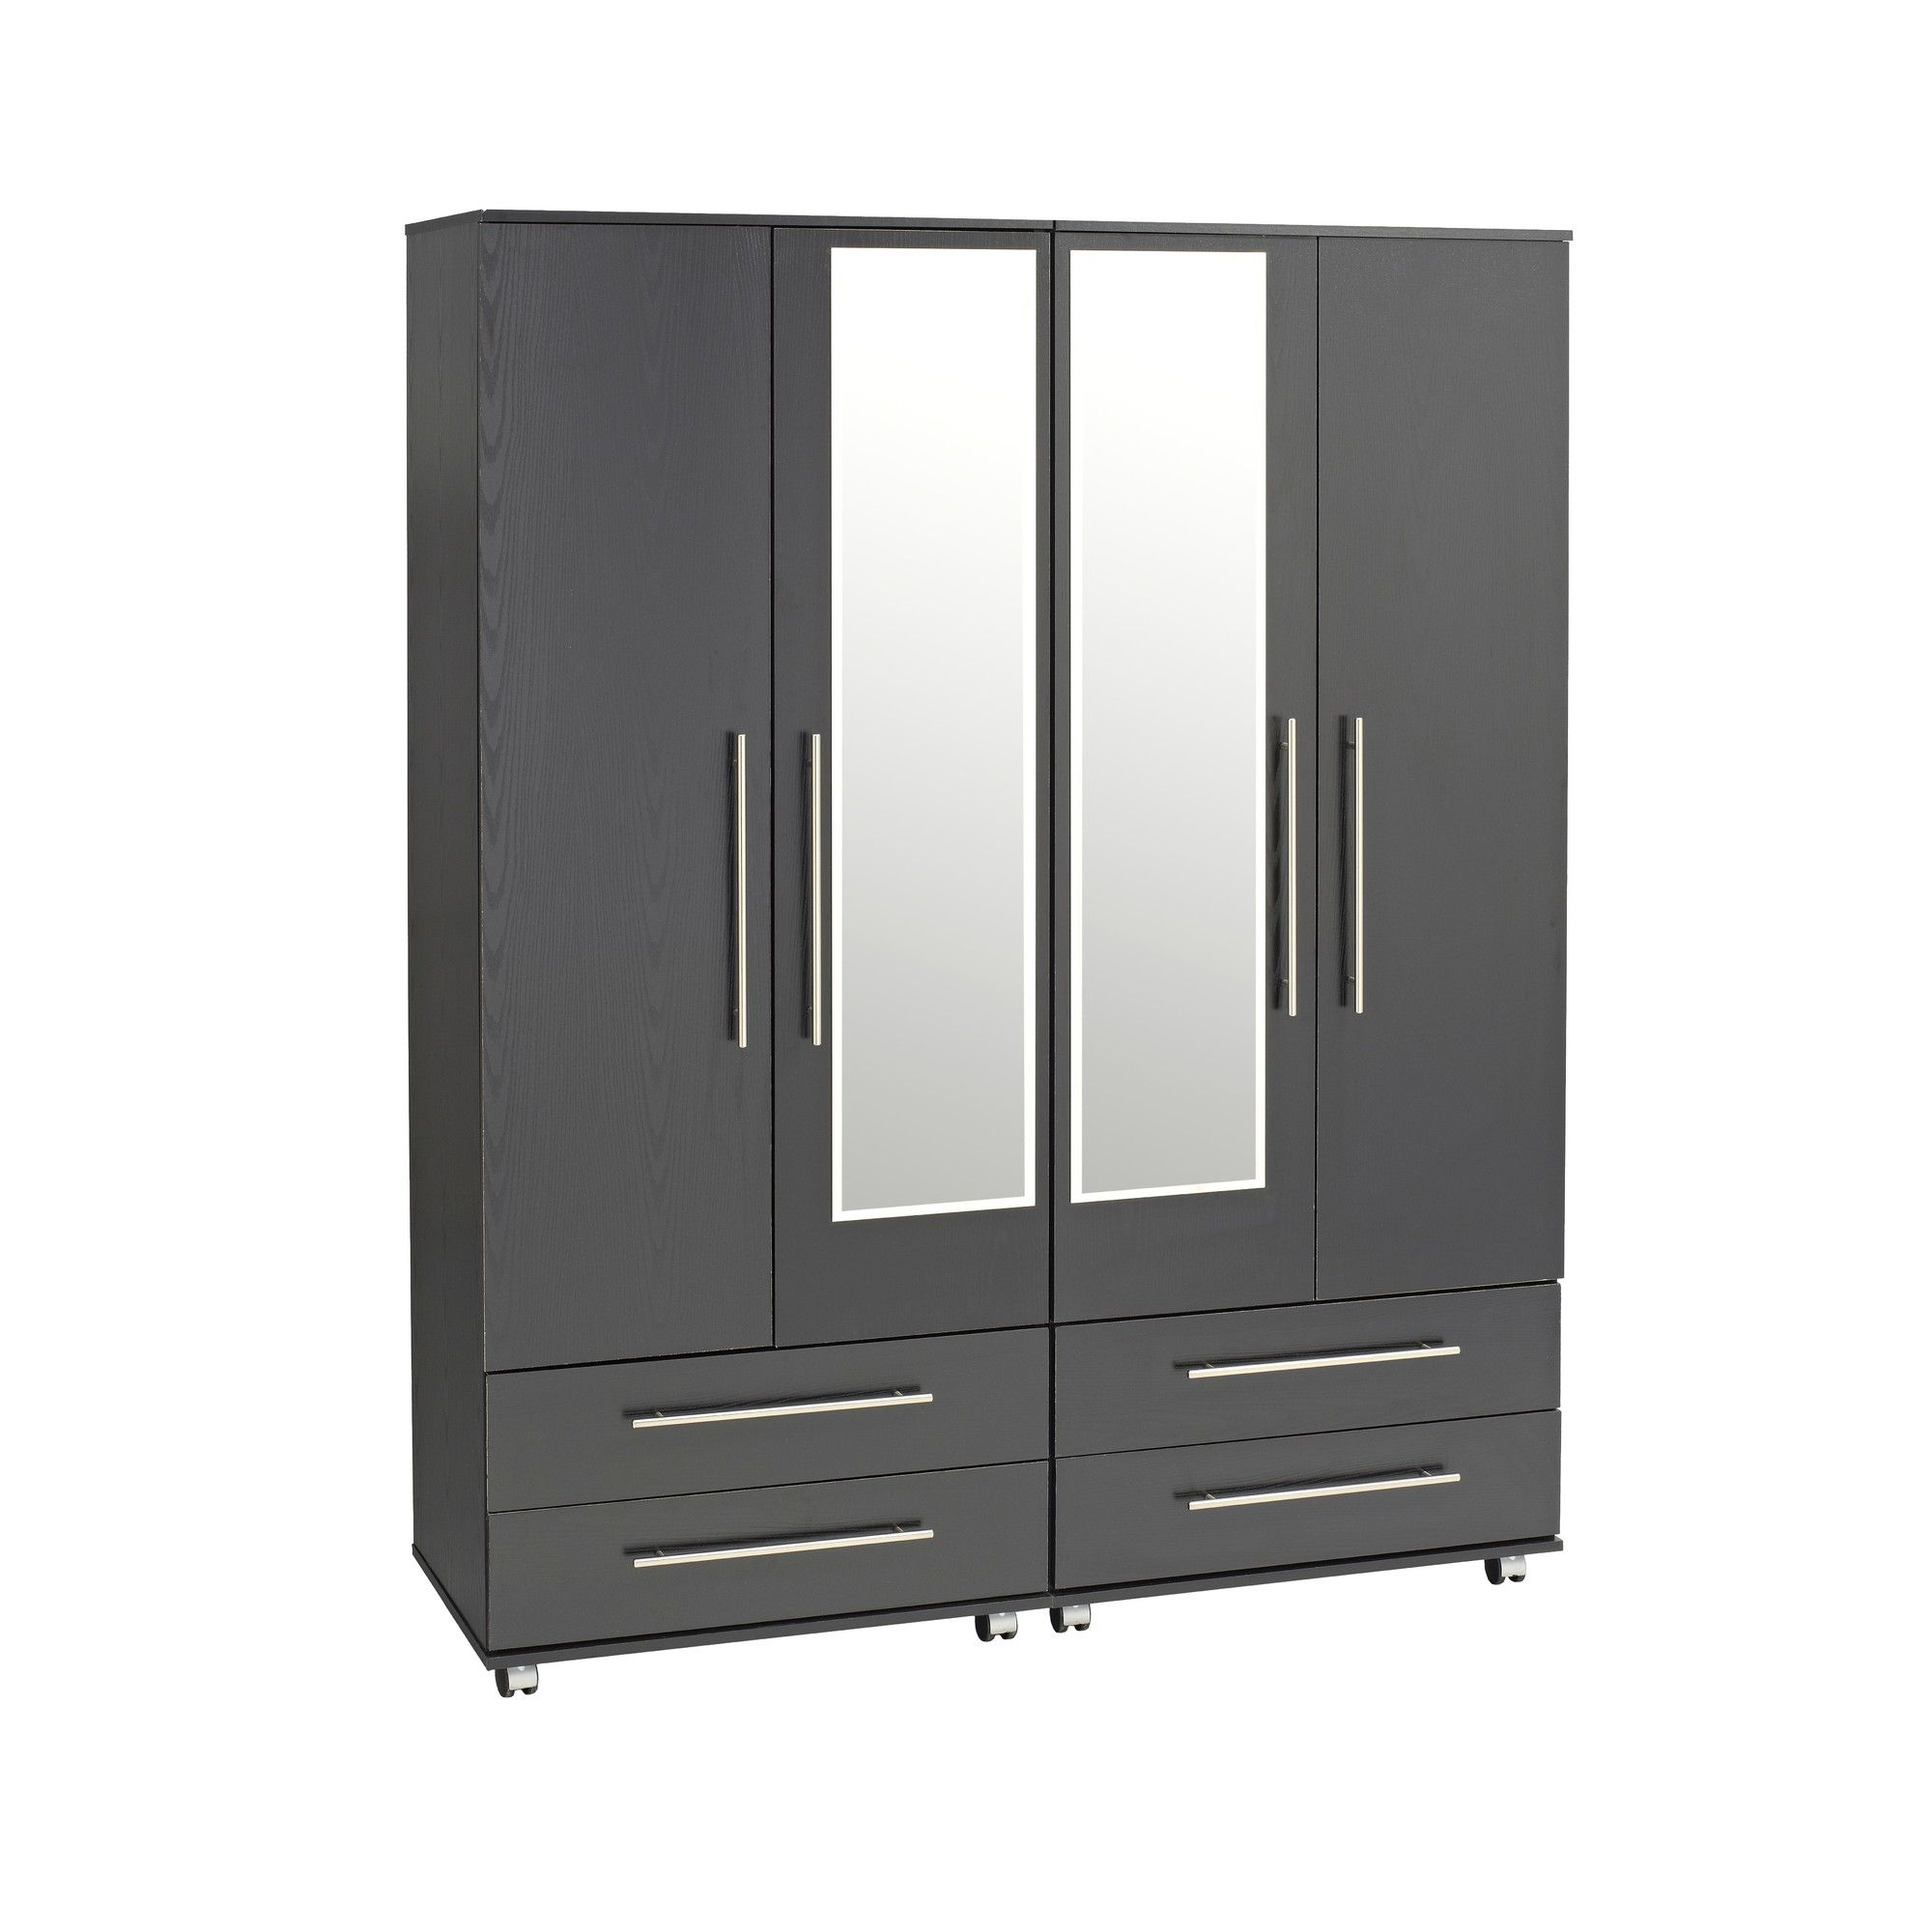 Ideal Furniture Bobby 4 Door Wardrobe - Oak at Tesco Direct